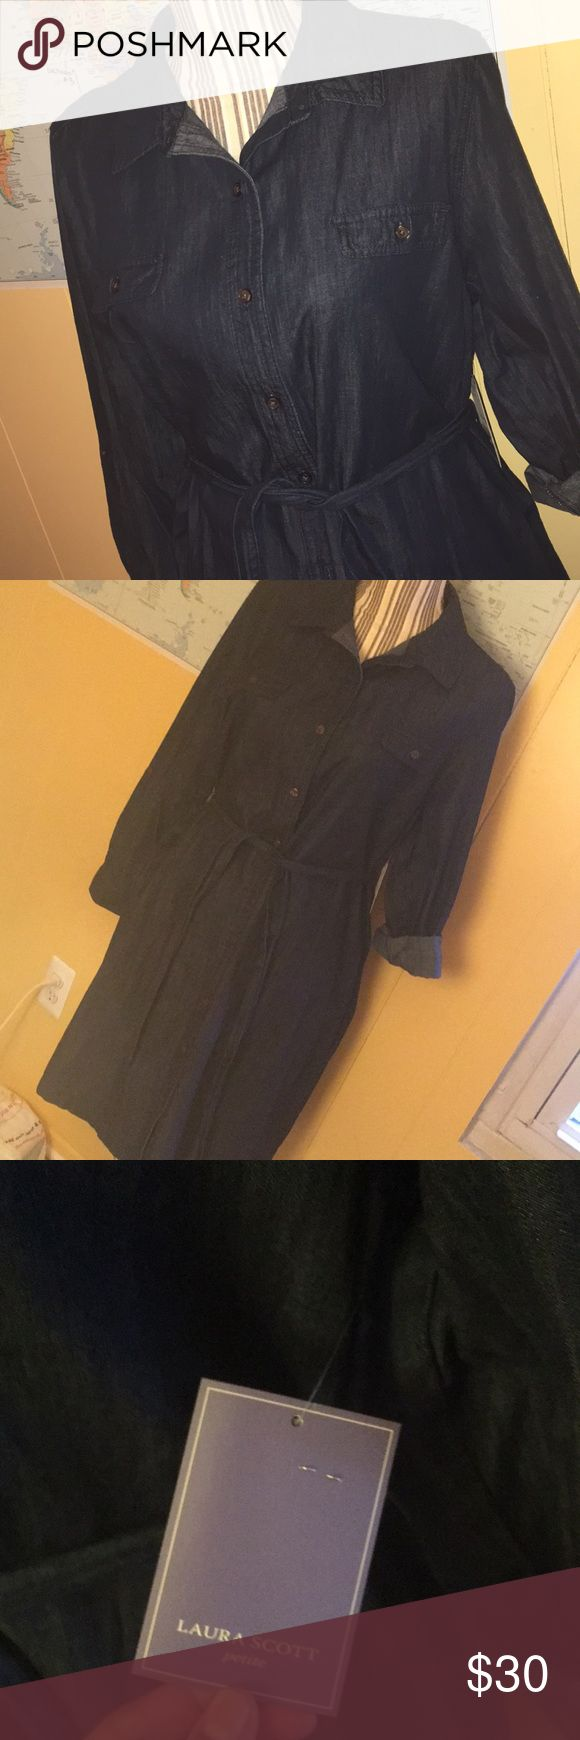 🎁NWT🎁 Laura Scott Denim Dress Excellent Condition! Great Holiday Gift🎉 XL Petite Laura Scott Dresses